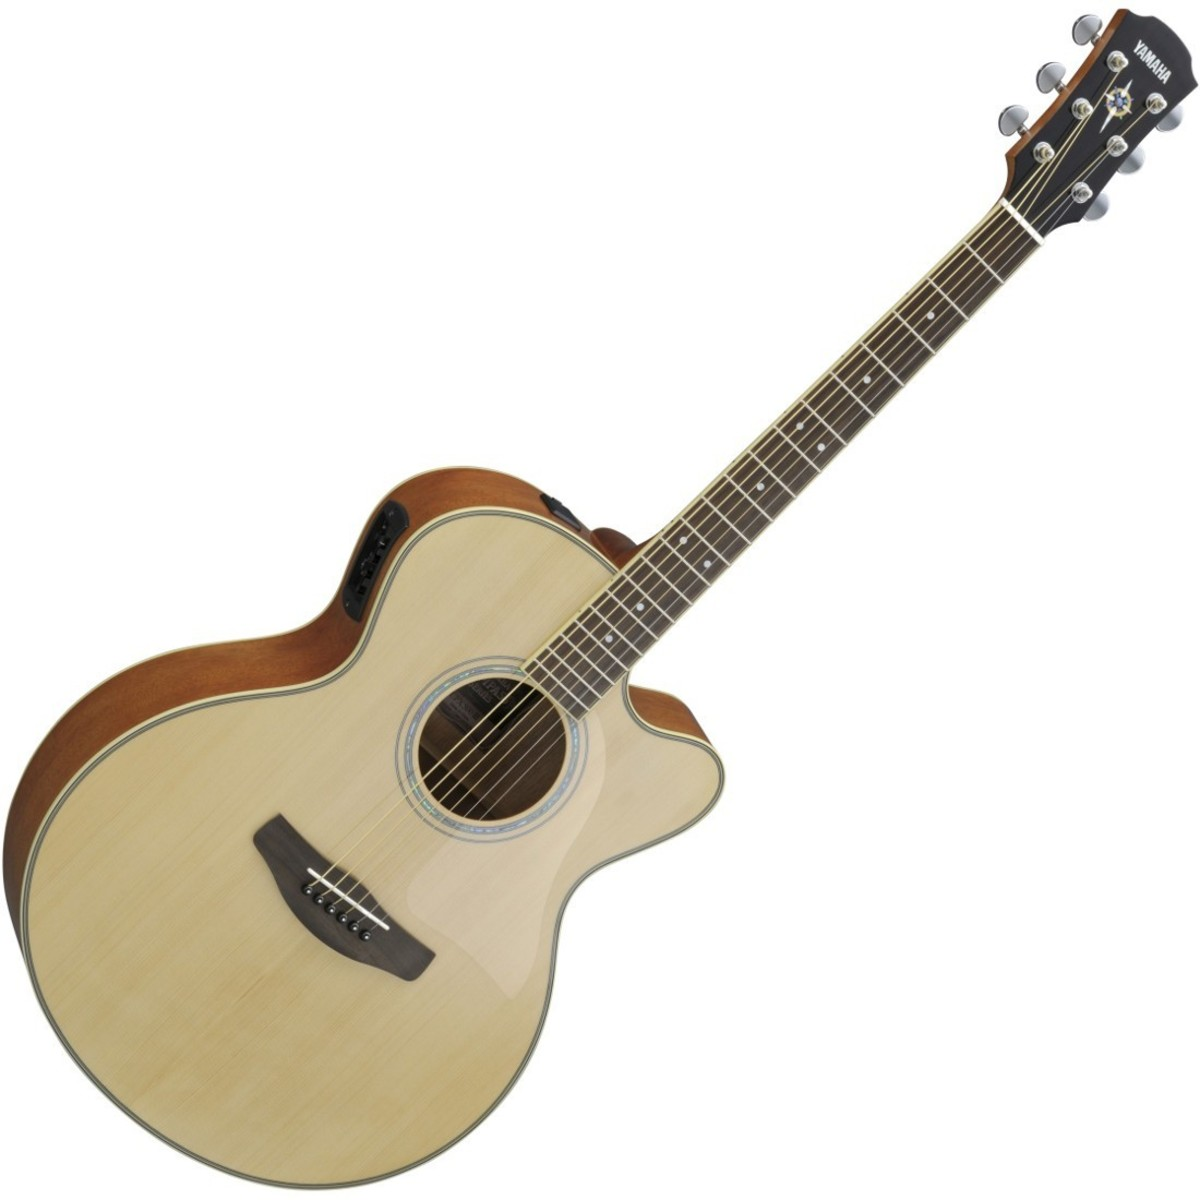 guitare electro acoustique yamaha cpx500 iii naturel. Black Bedroom Furniture Sets. Home Design Ideas